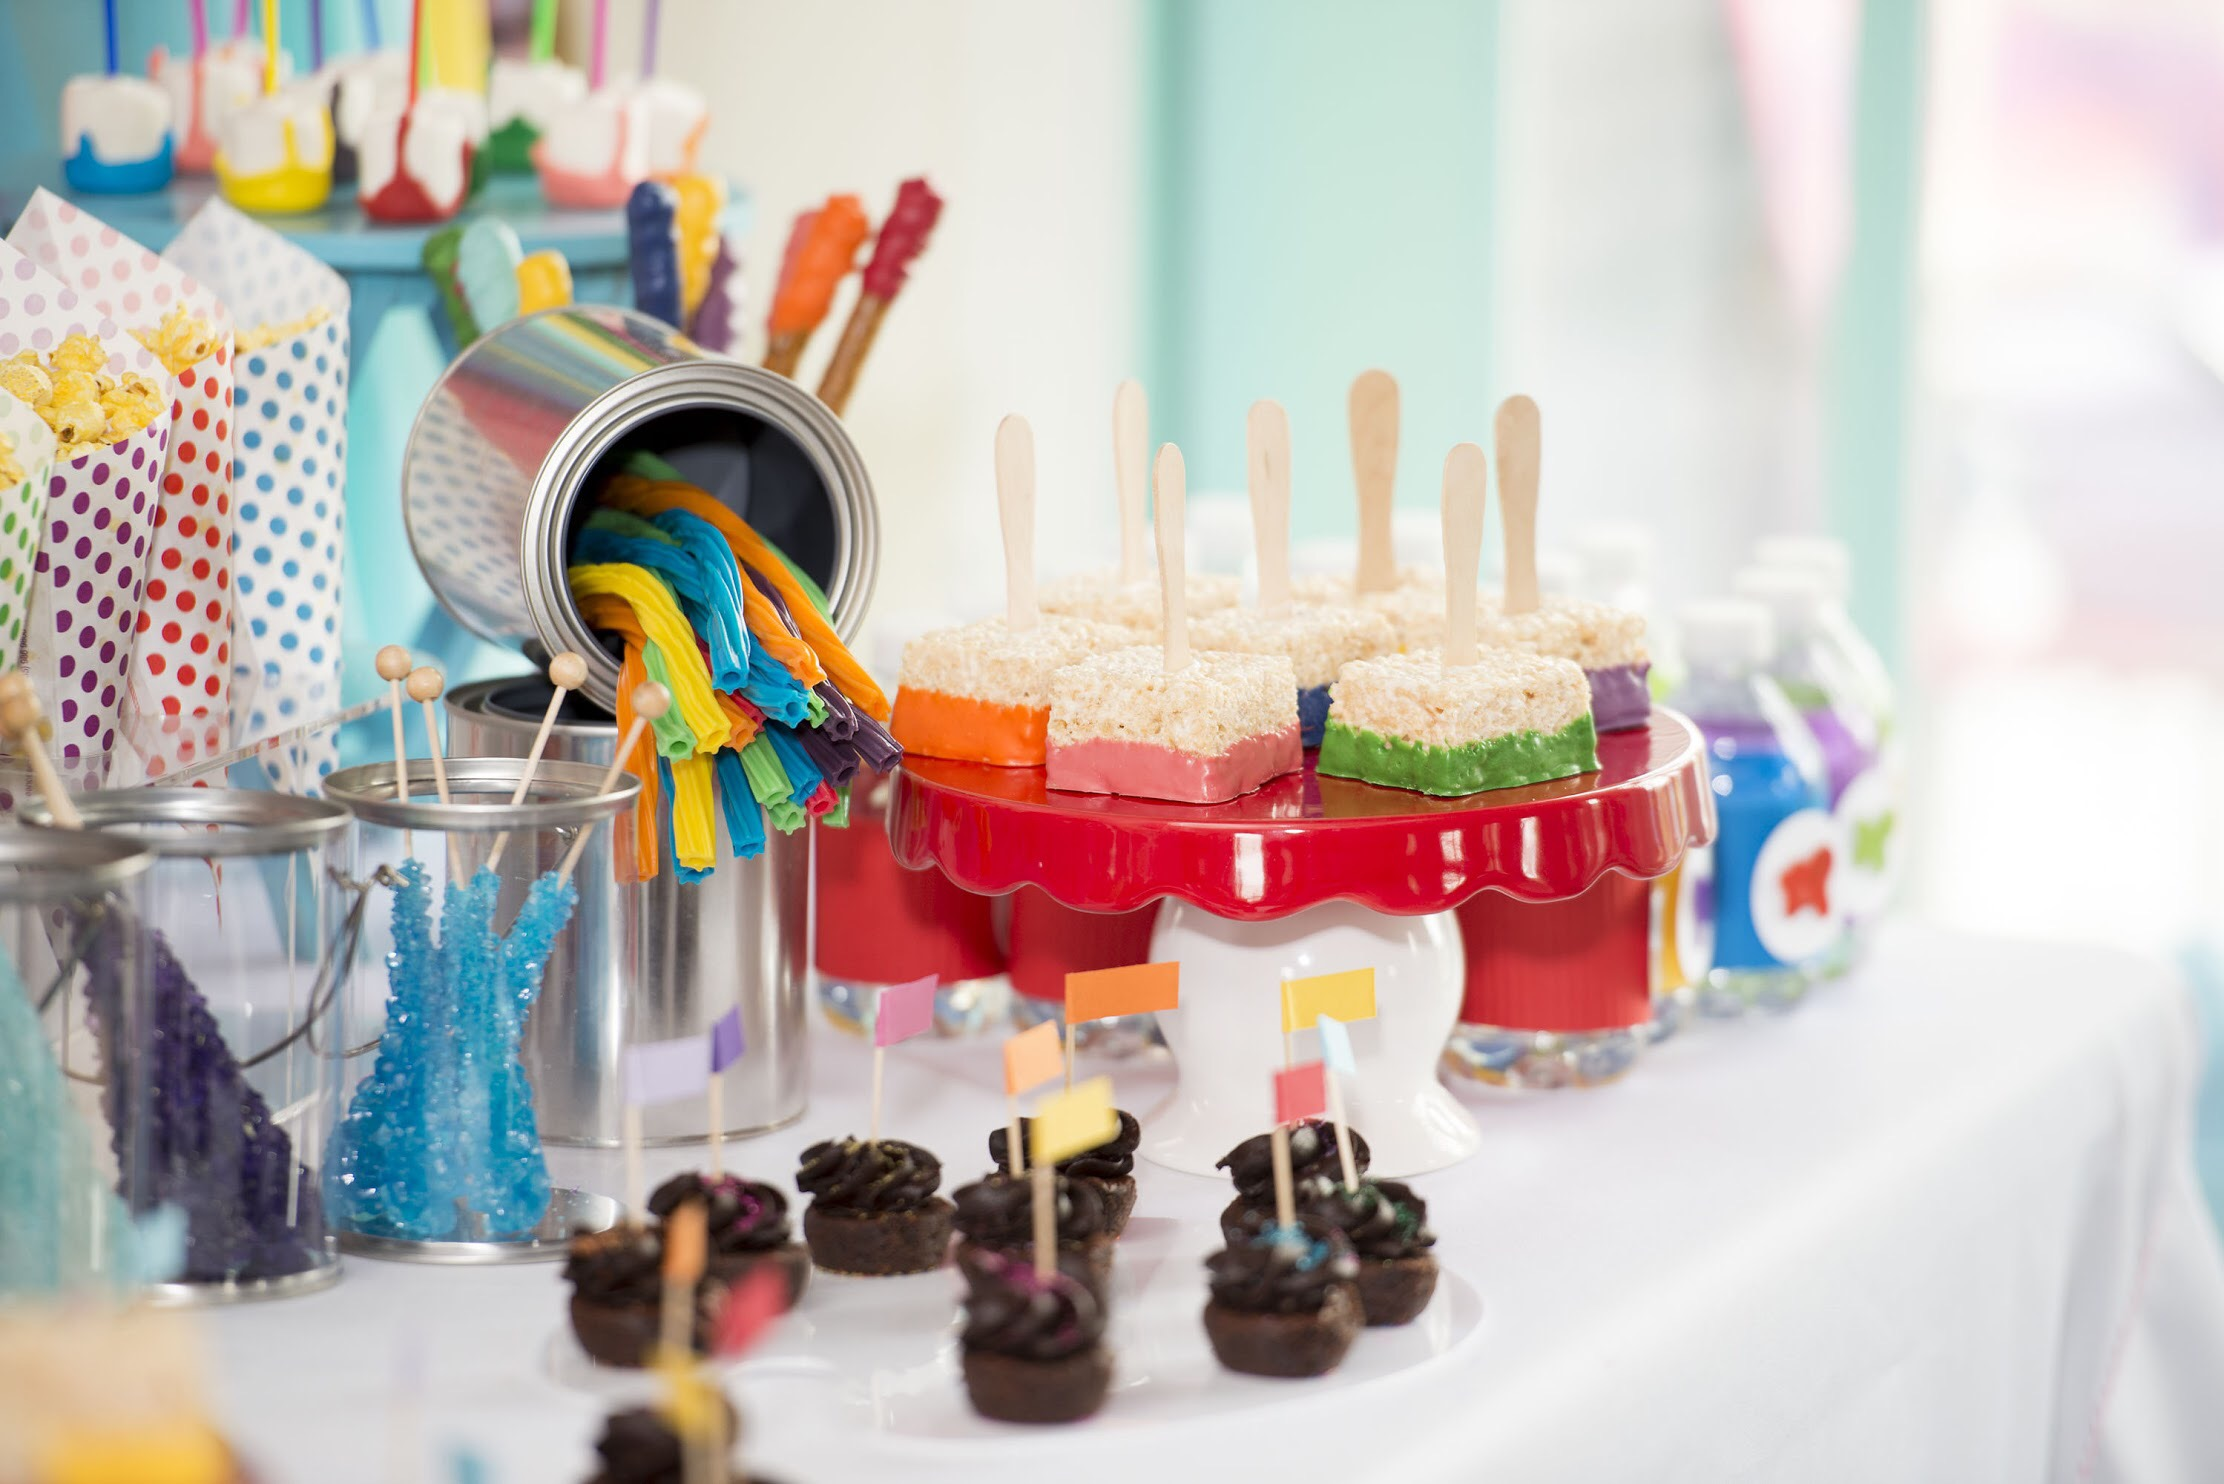 Super cute art themed desserts for art themed birthday party. See all the details on how to plan your art party at a local art studio on Mint Event Design www.minteventdesign.com #partydessert #kidsparty #kidspartyideas #birthdaypartyideas #artparty #rainbowparty